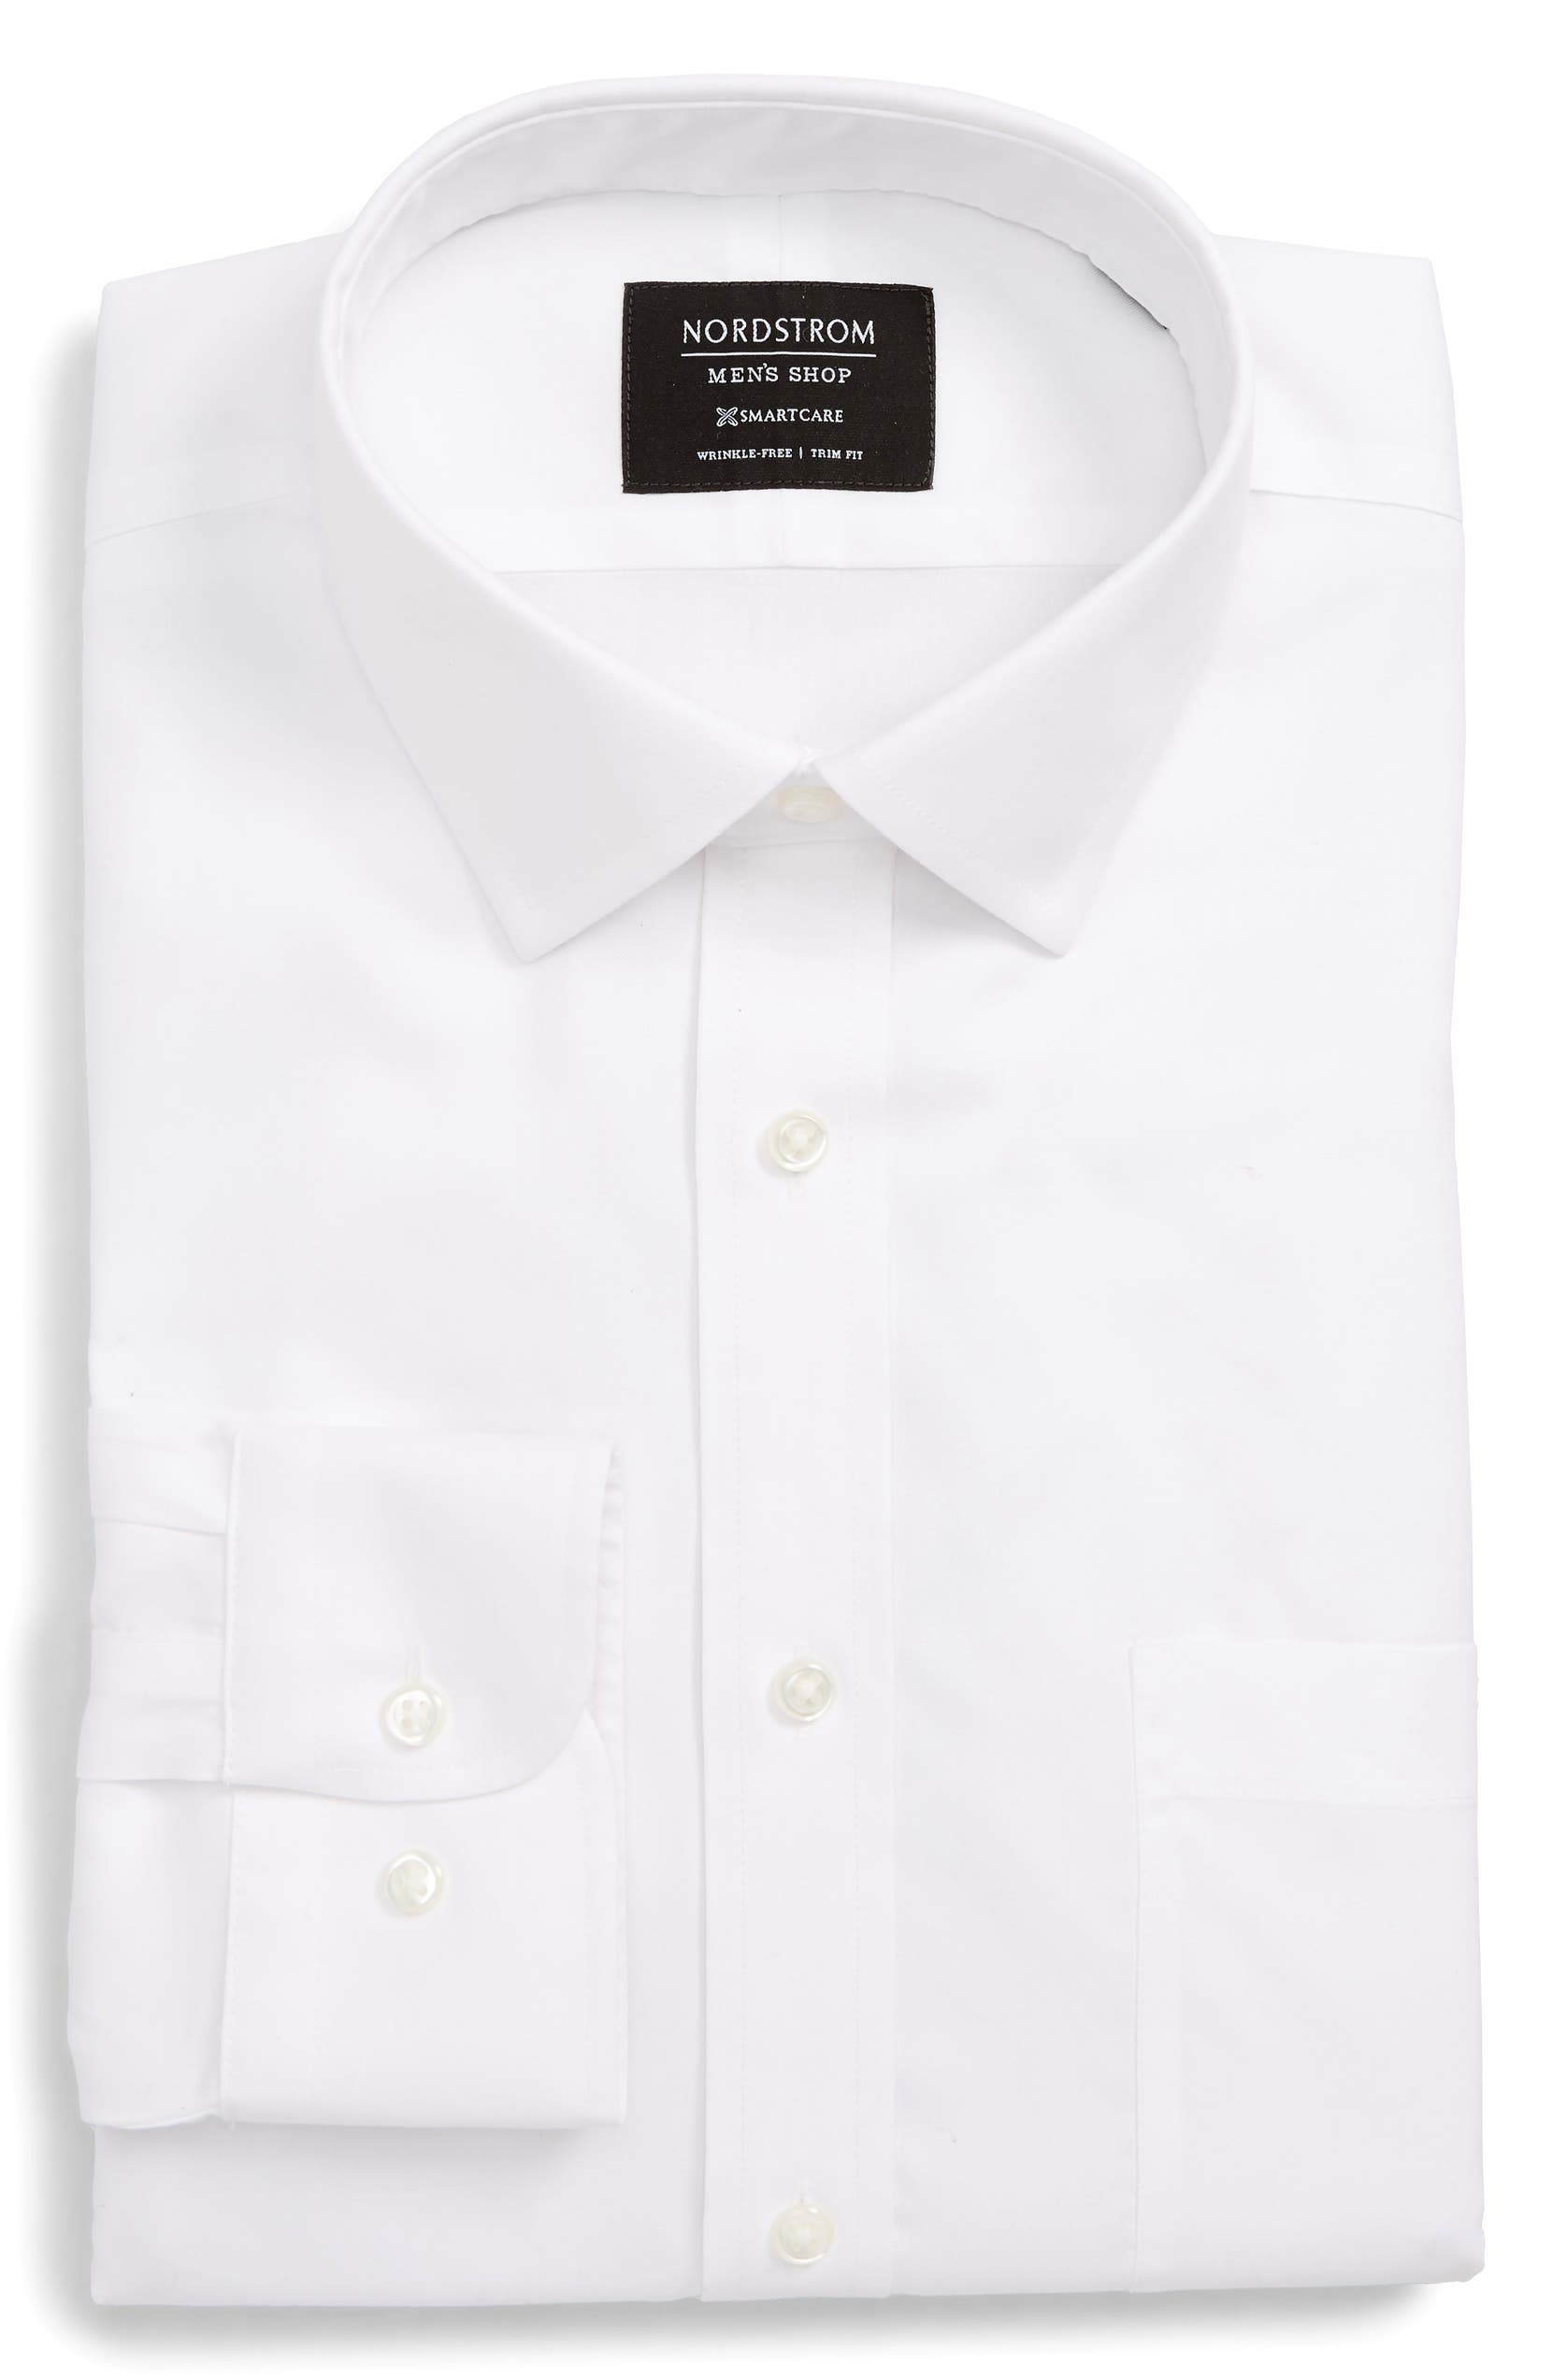 Nordstrom Mens Shop Smartcare Trim Fit Solid Dress Shirt Nordstrom